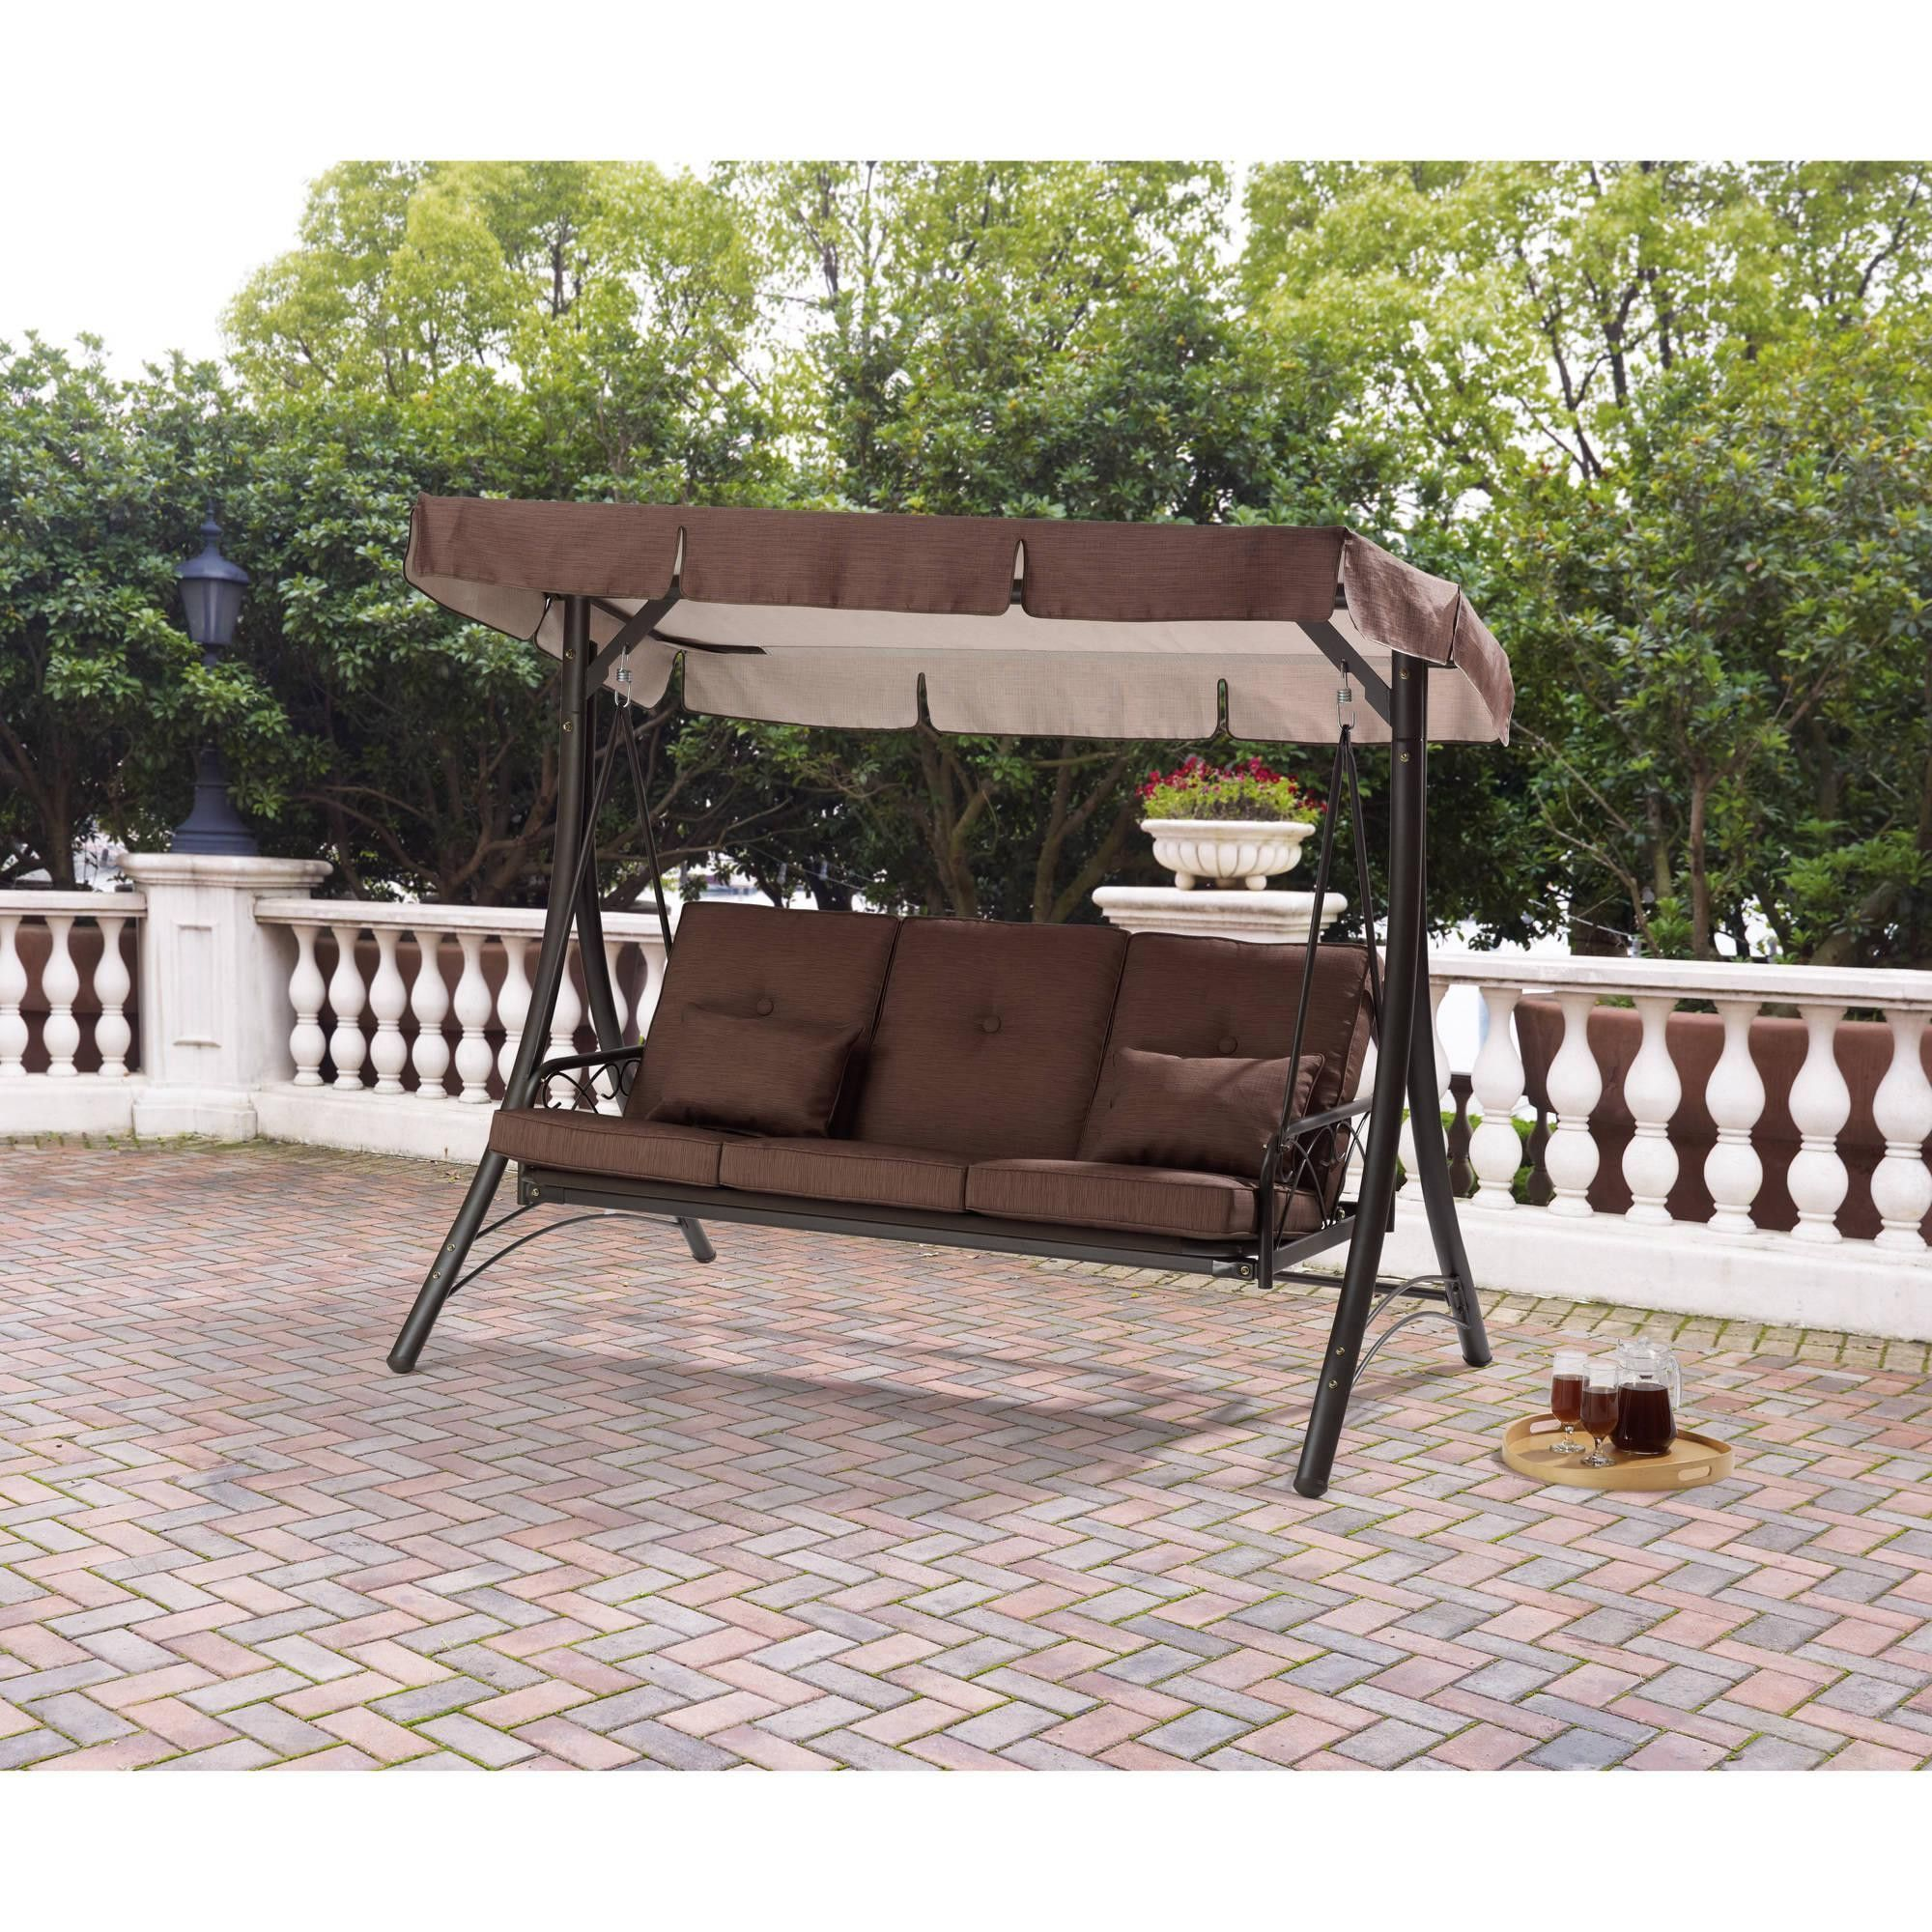 details furniture itm swing products outdoor canopy choice best deck hammock converting patio burgundy bcp seats about